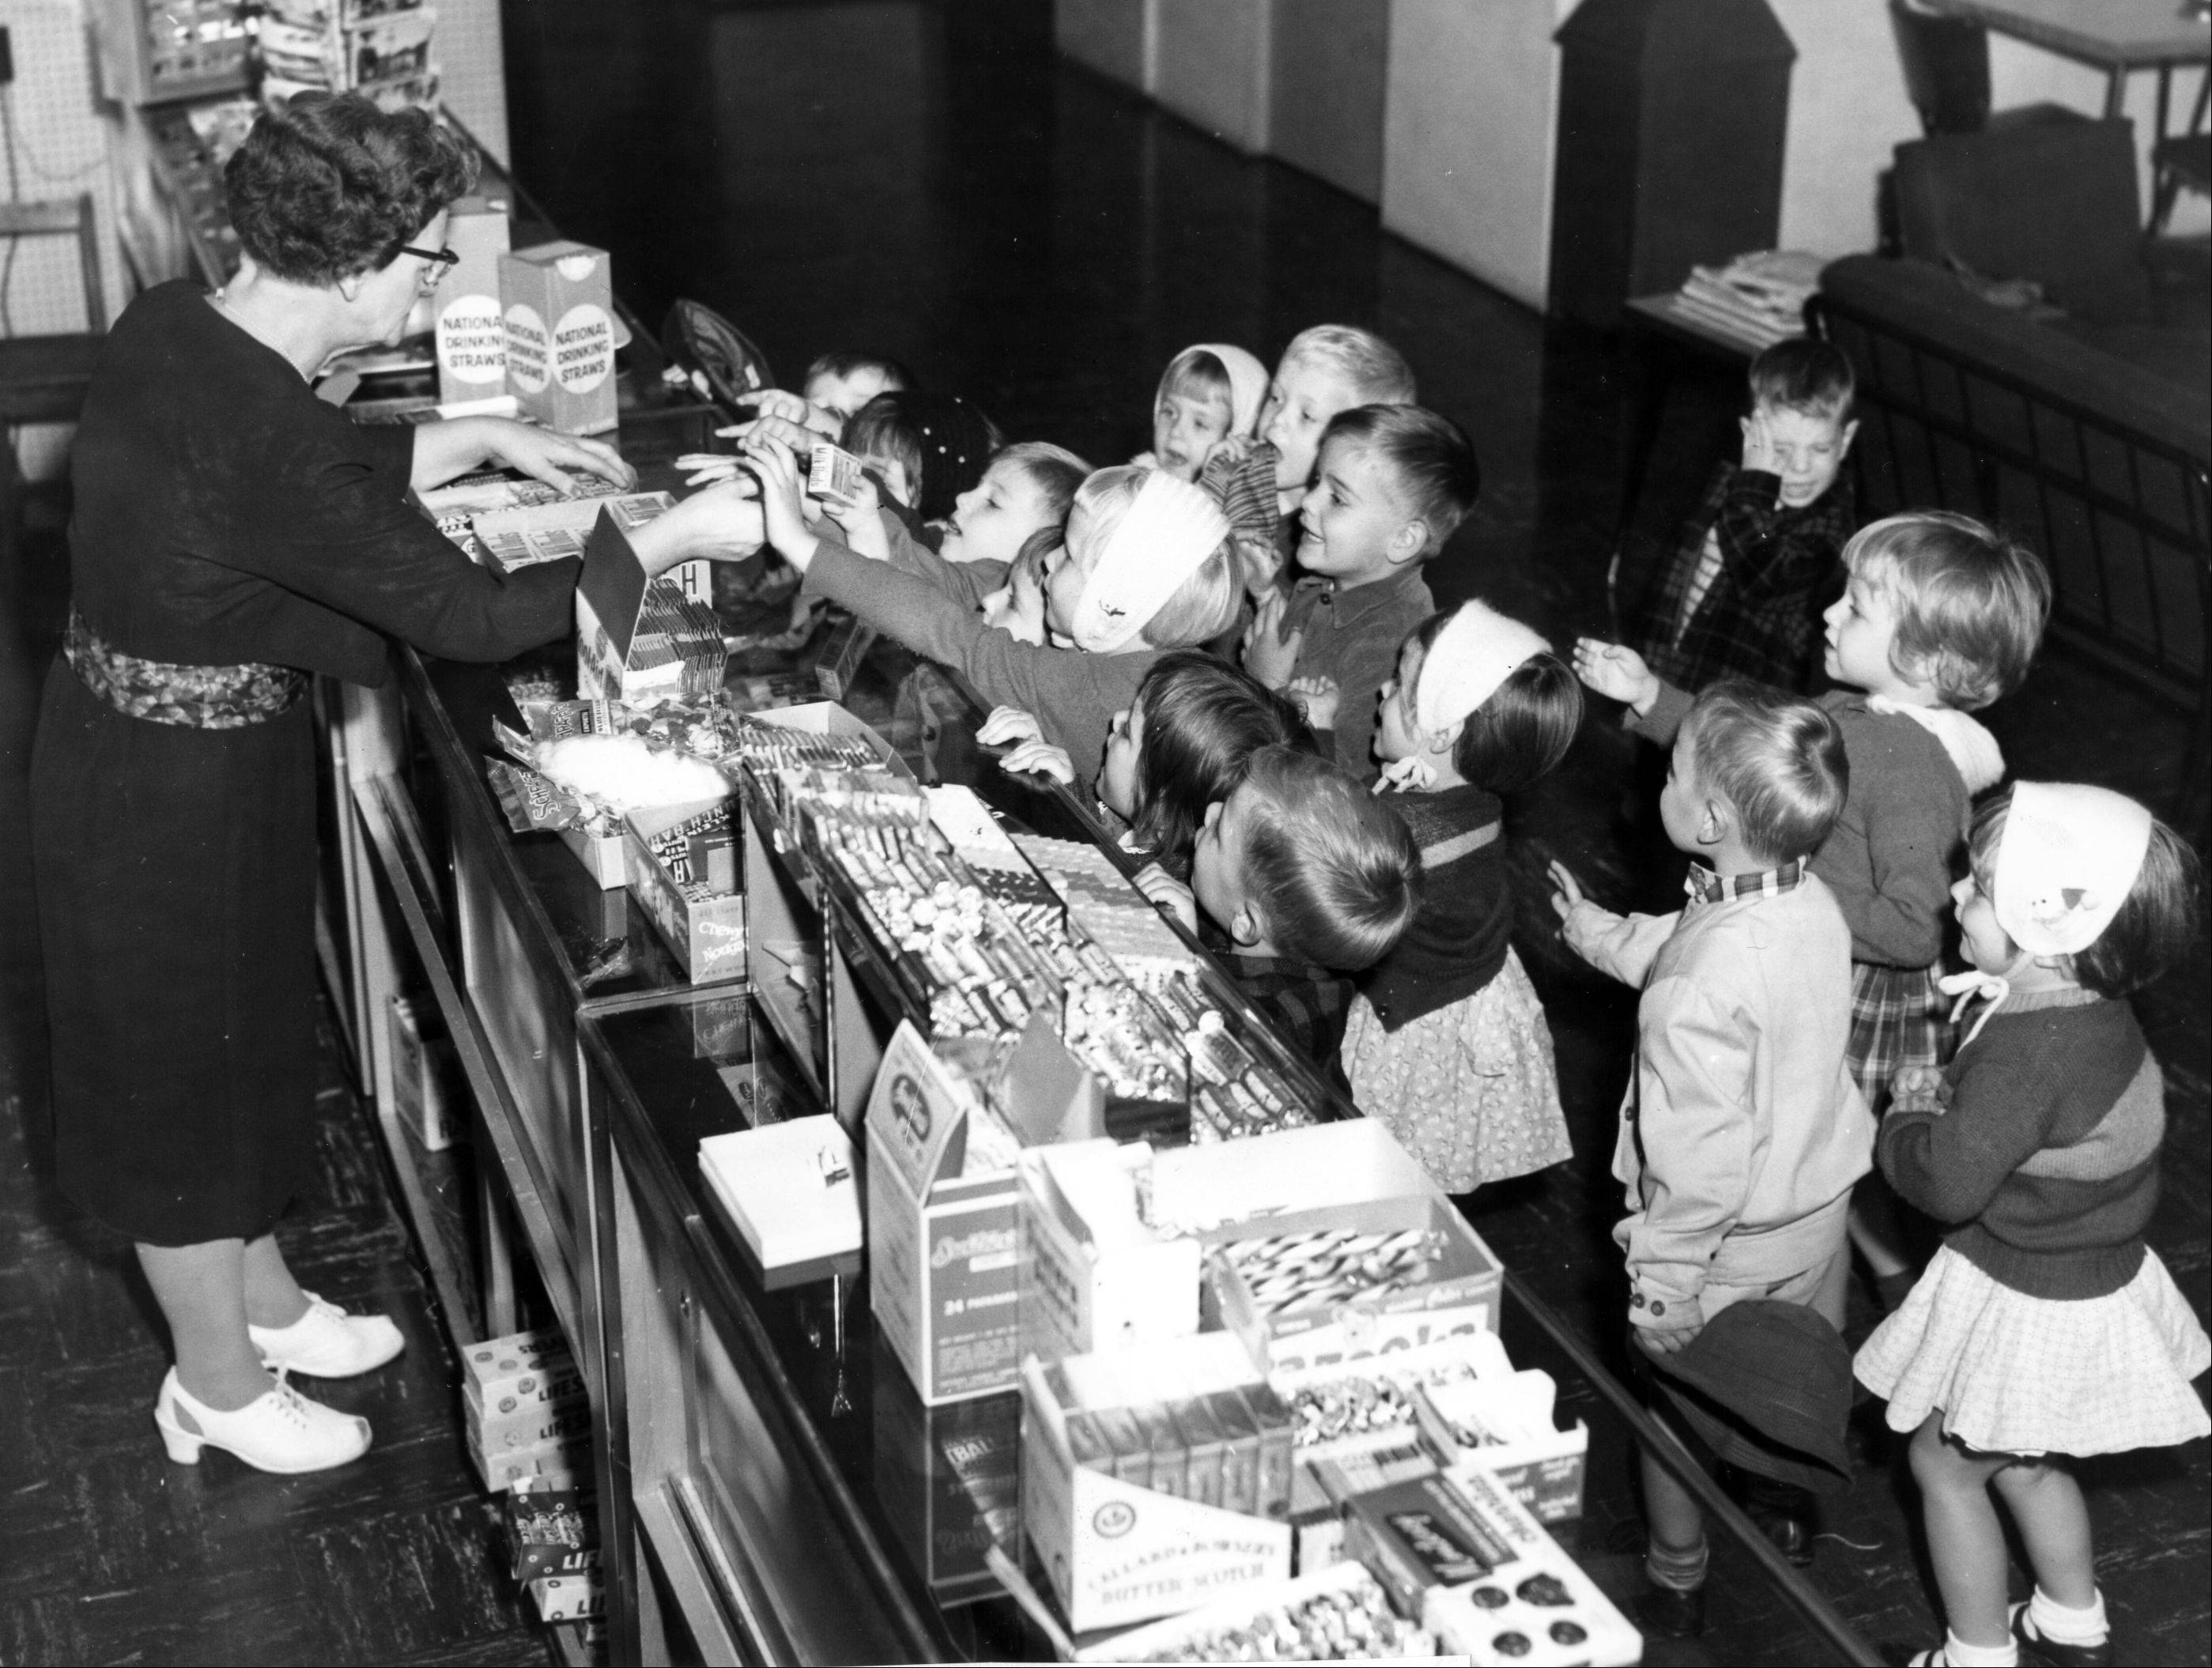 Mooseheart students, circa 1950, shop for candy at the commissary.